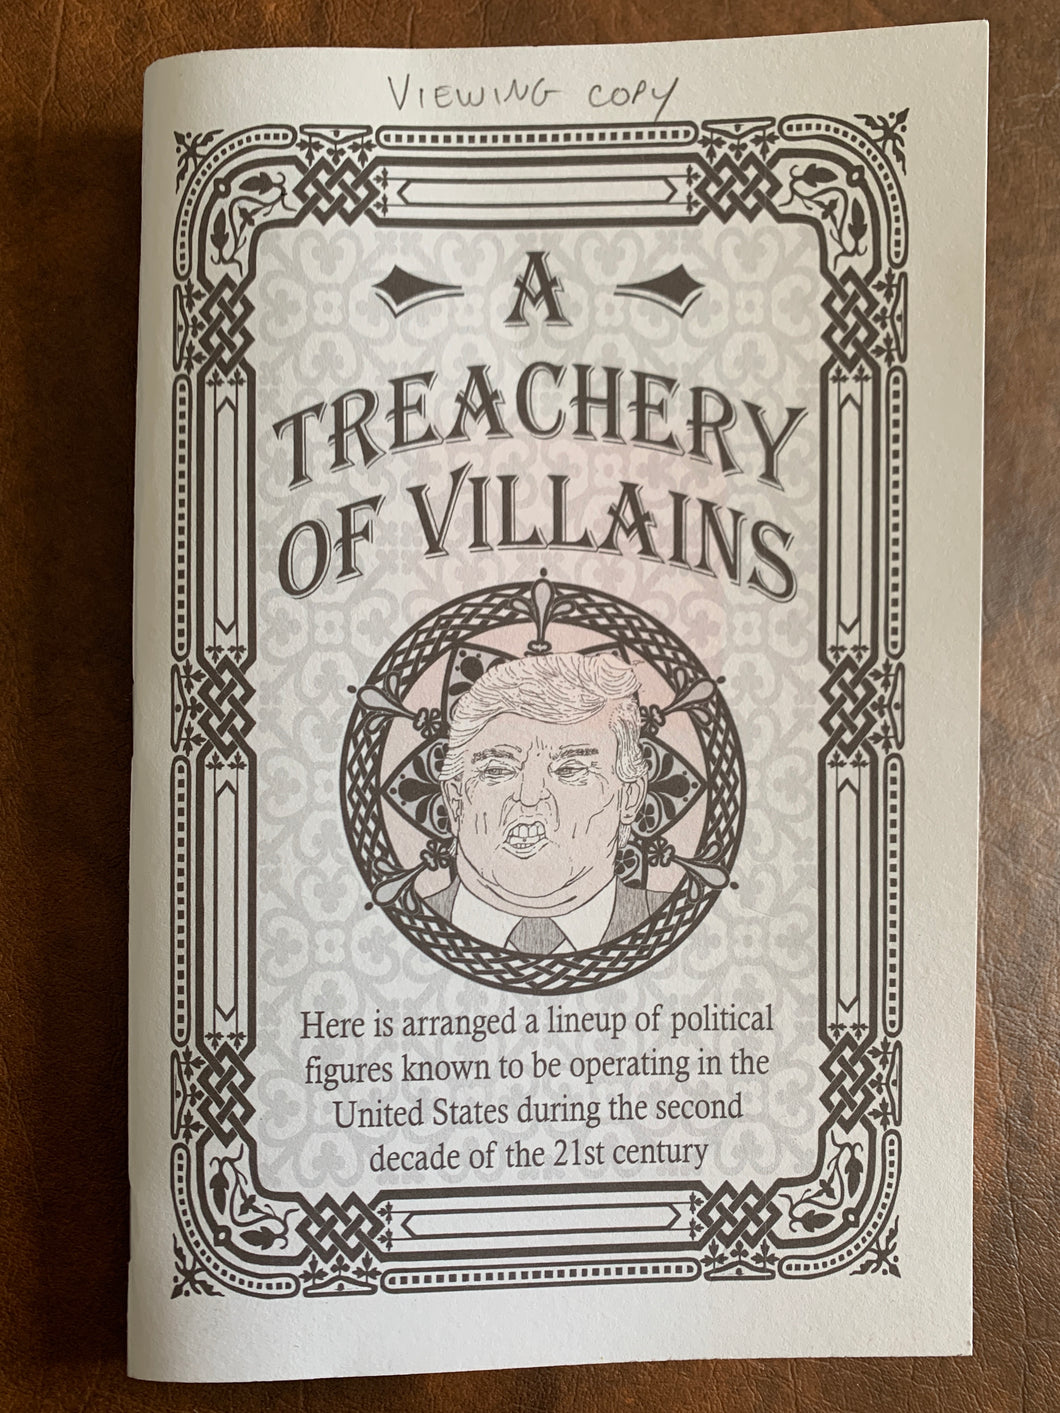 A Treachery of Villains